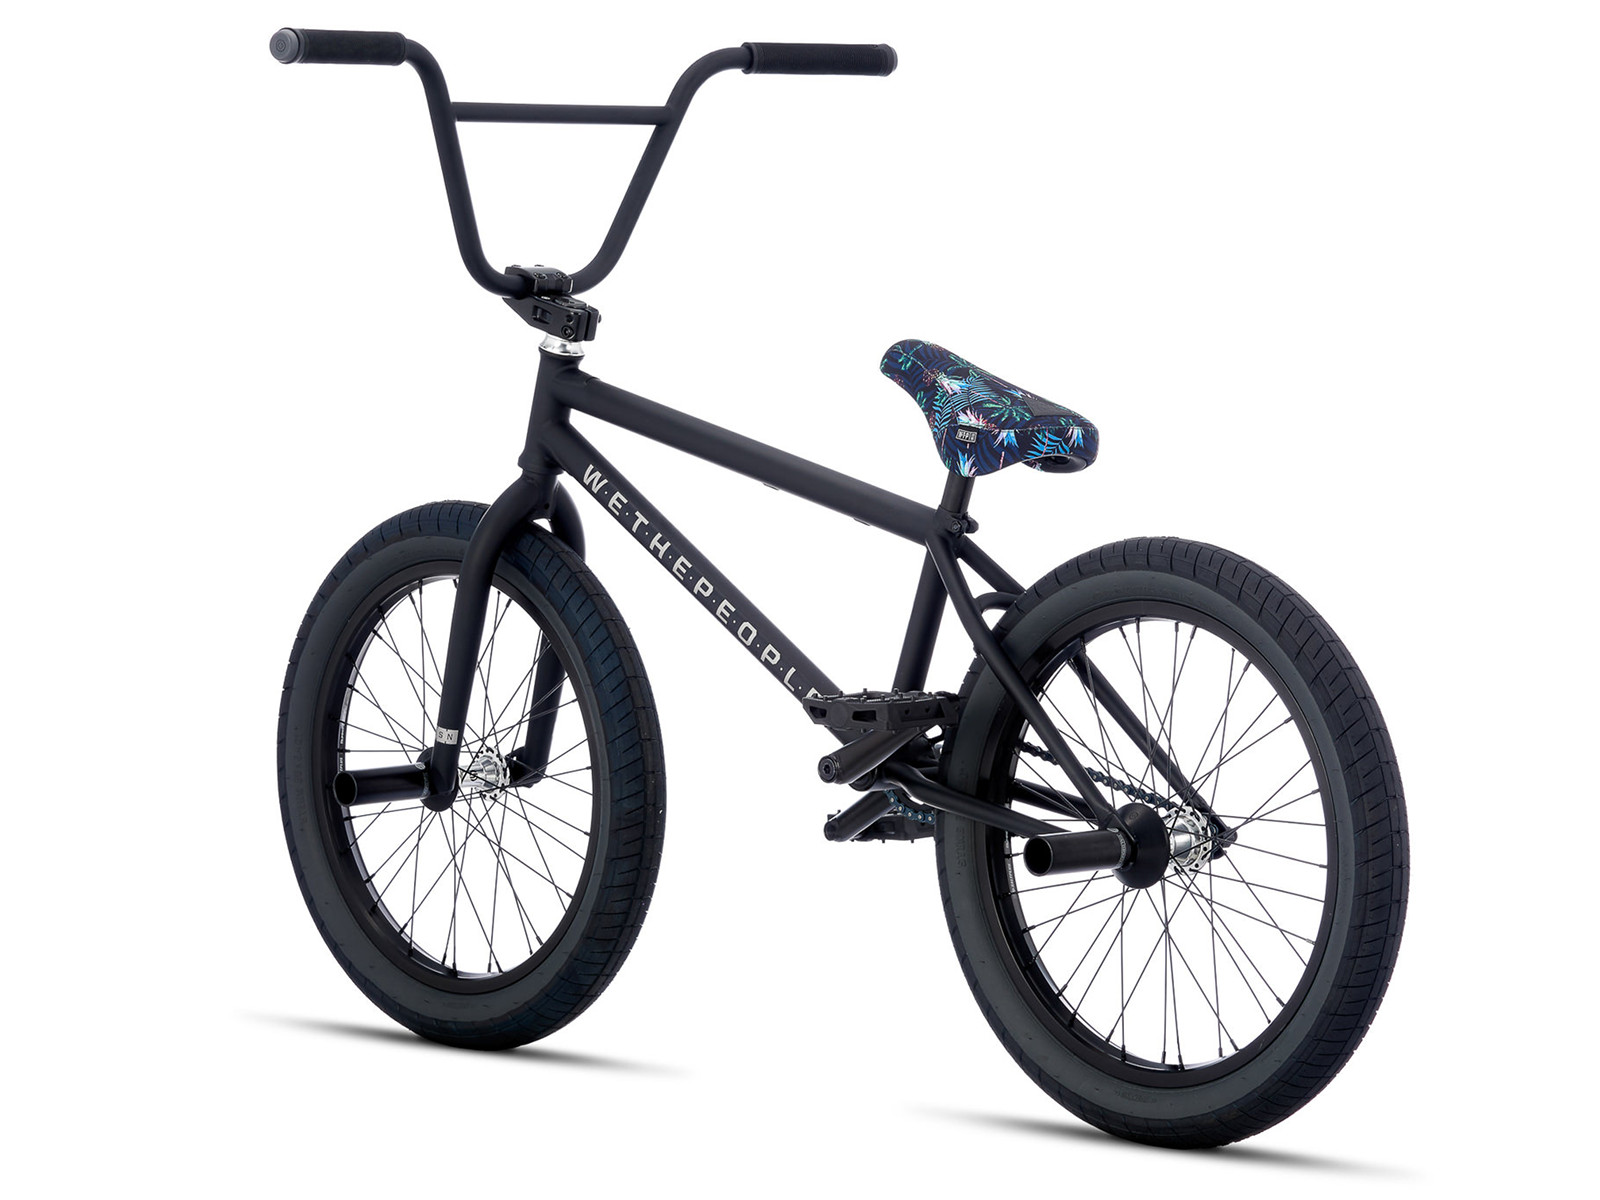 103204f97e2 Wethepeople Reason 2017 – Black – The Curb BMX Shop Malaysia